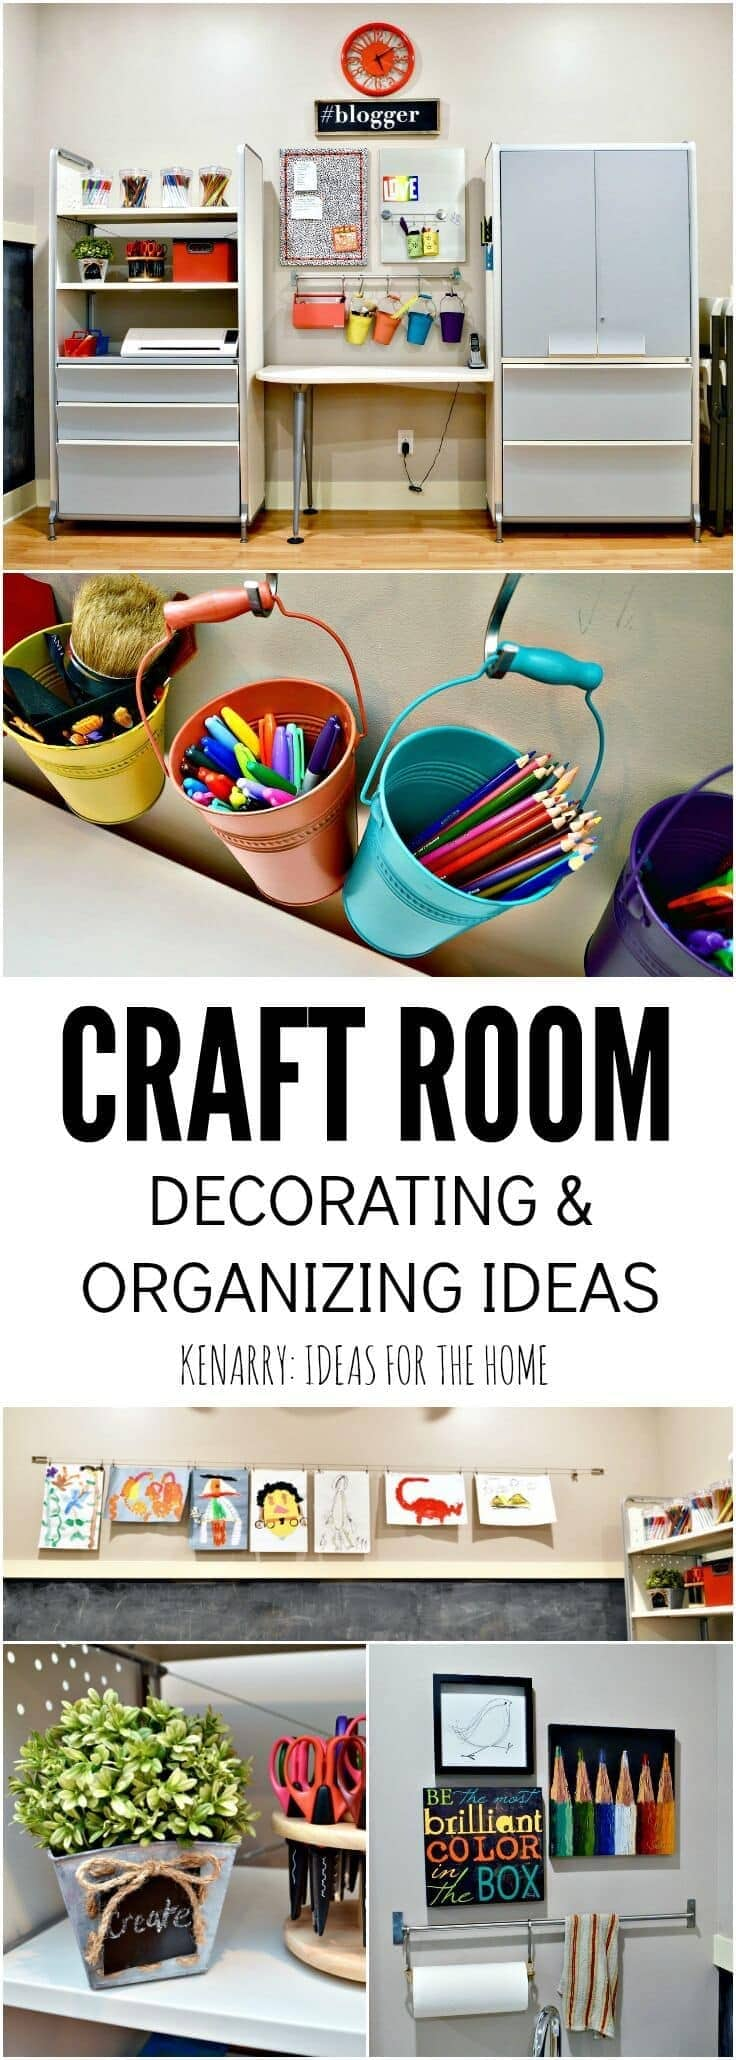 Love this craft room tour! So many colorful decorating ideas and easy organizing ideas that would work great for a kid's art room or a creative home office space.